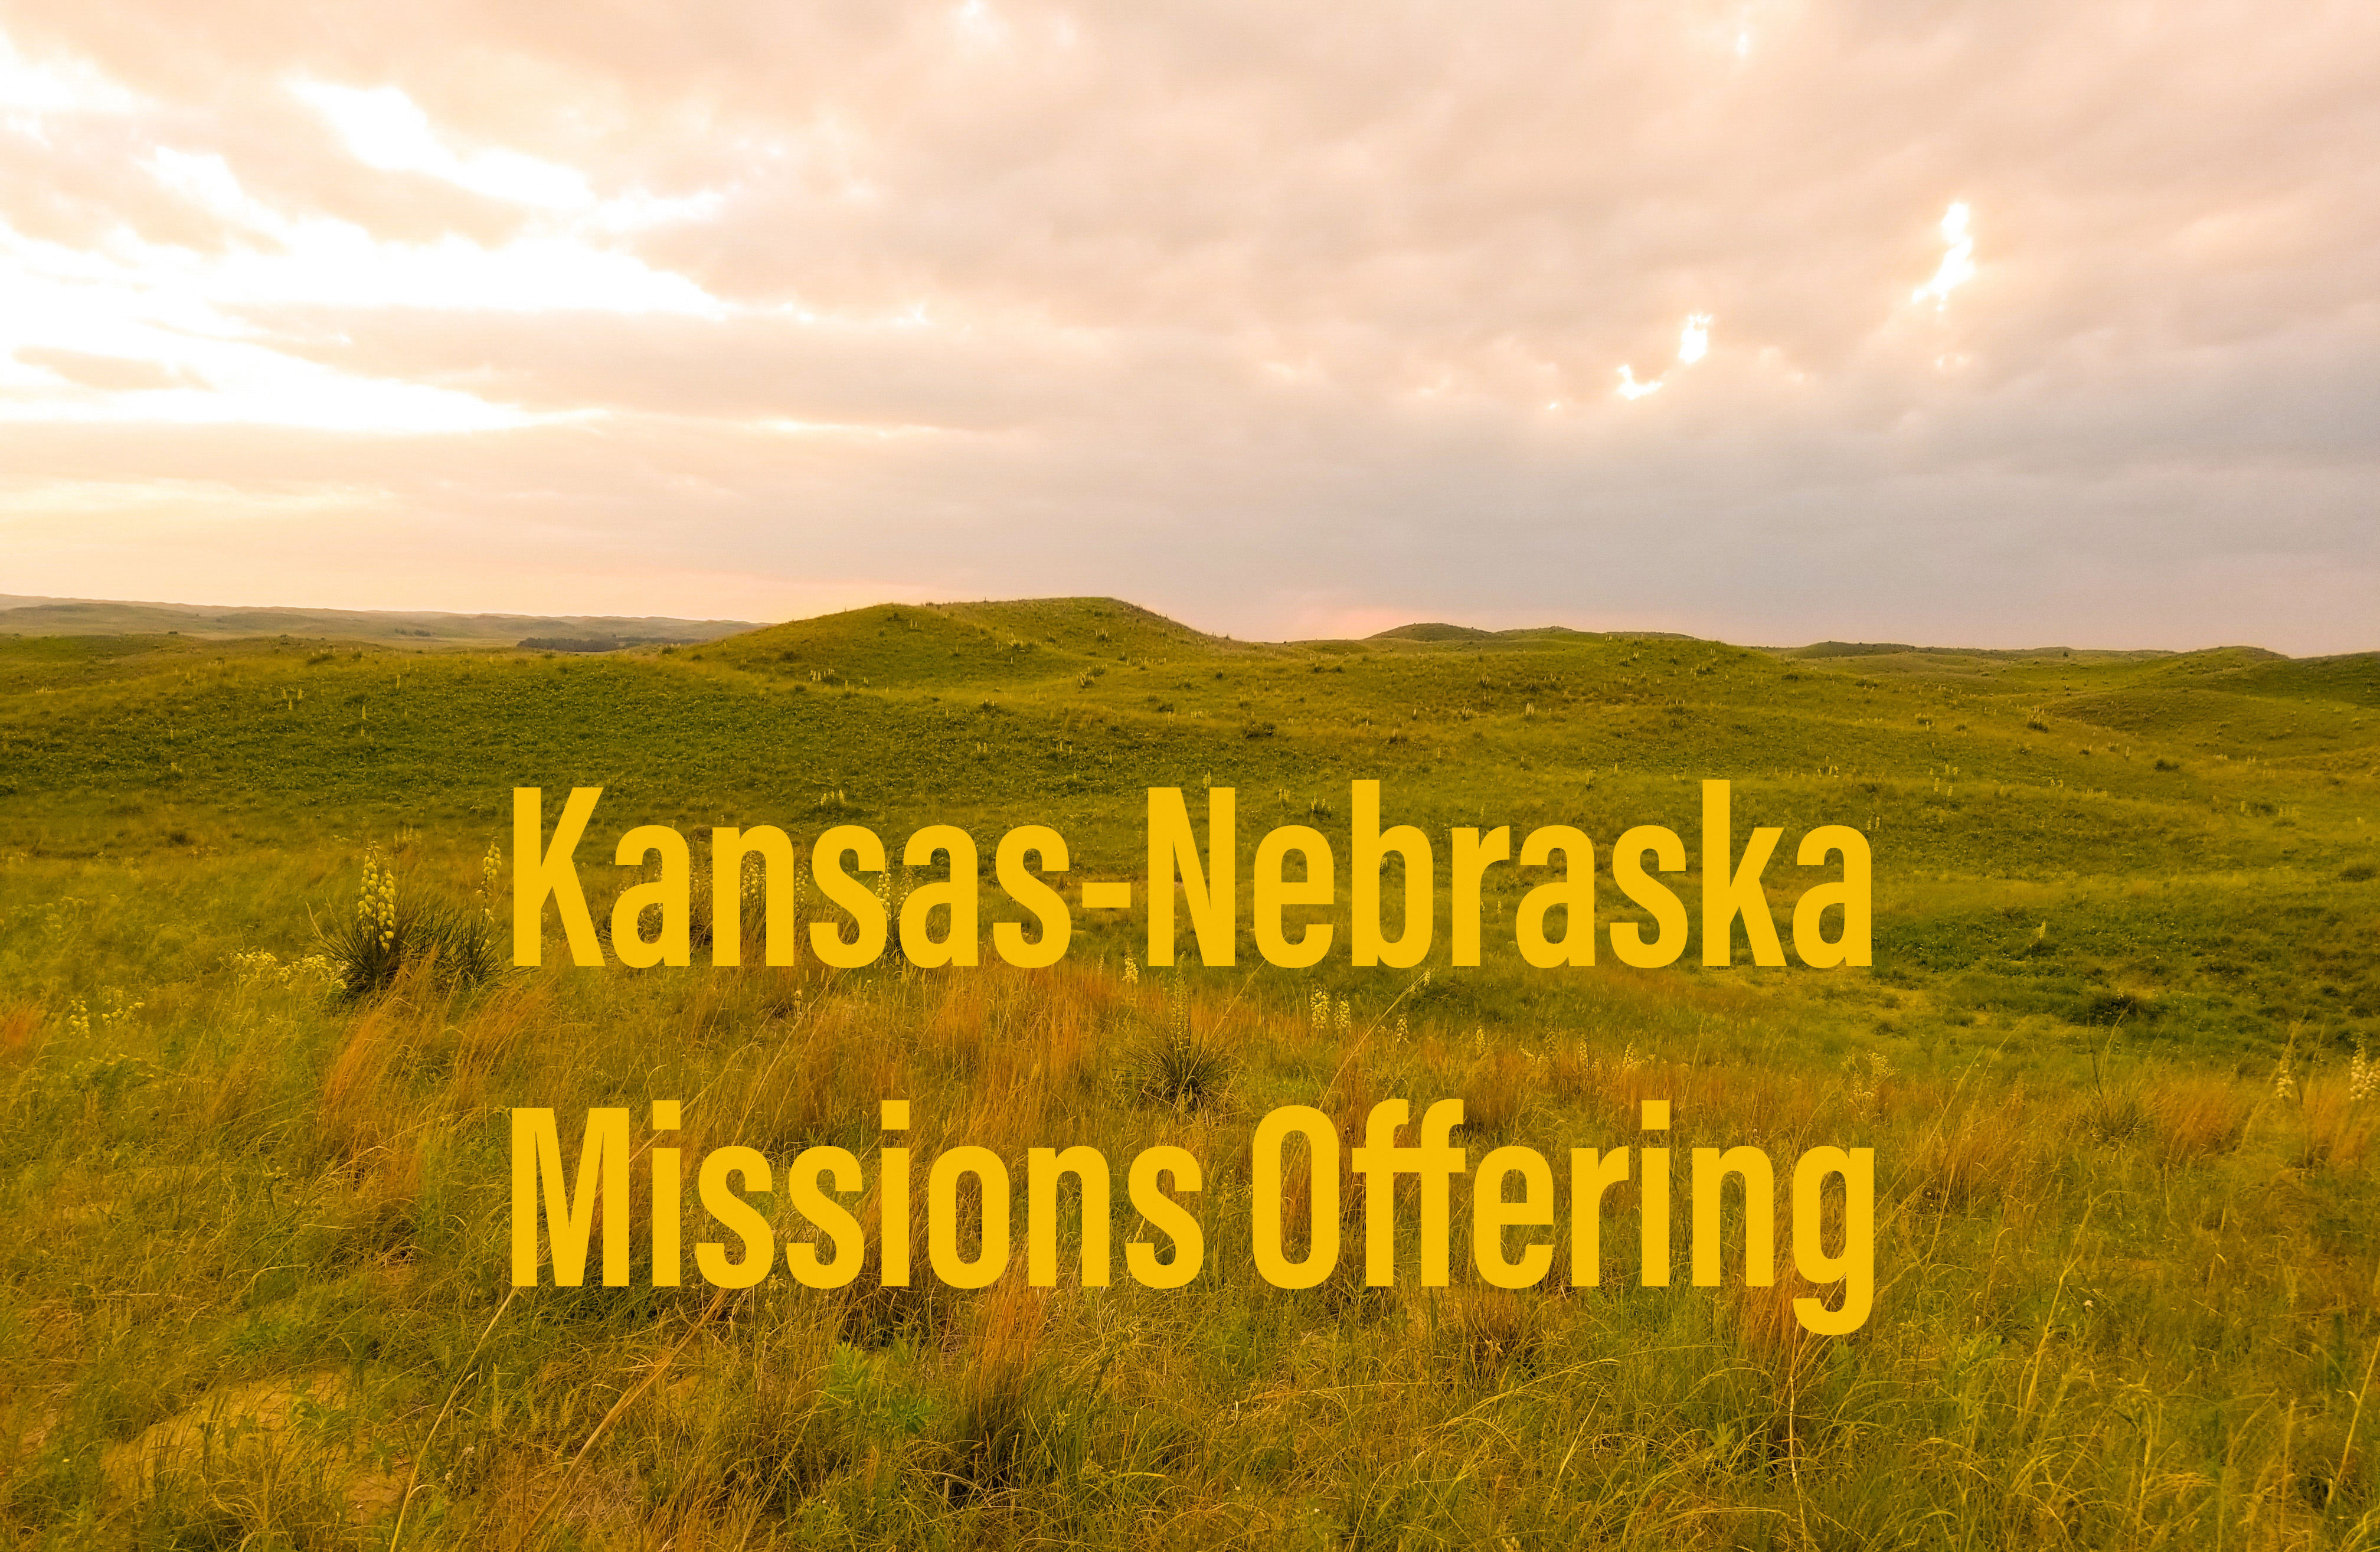 Plan now to promote Kansas-Nebraska missions offering